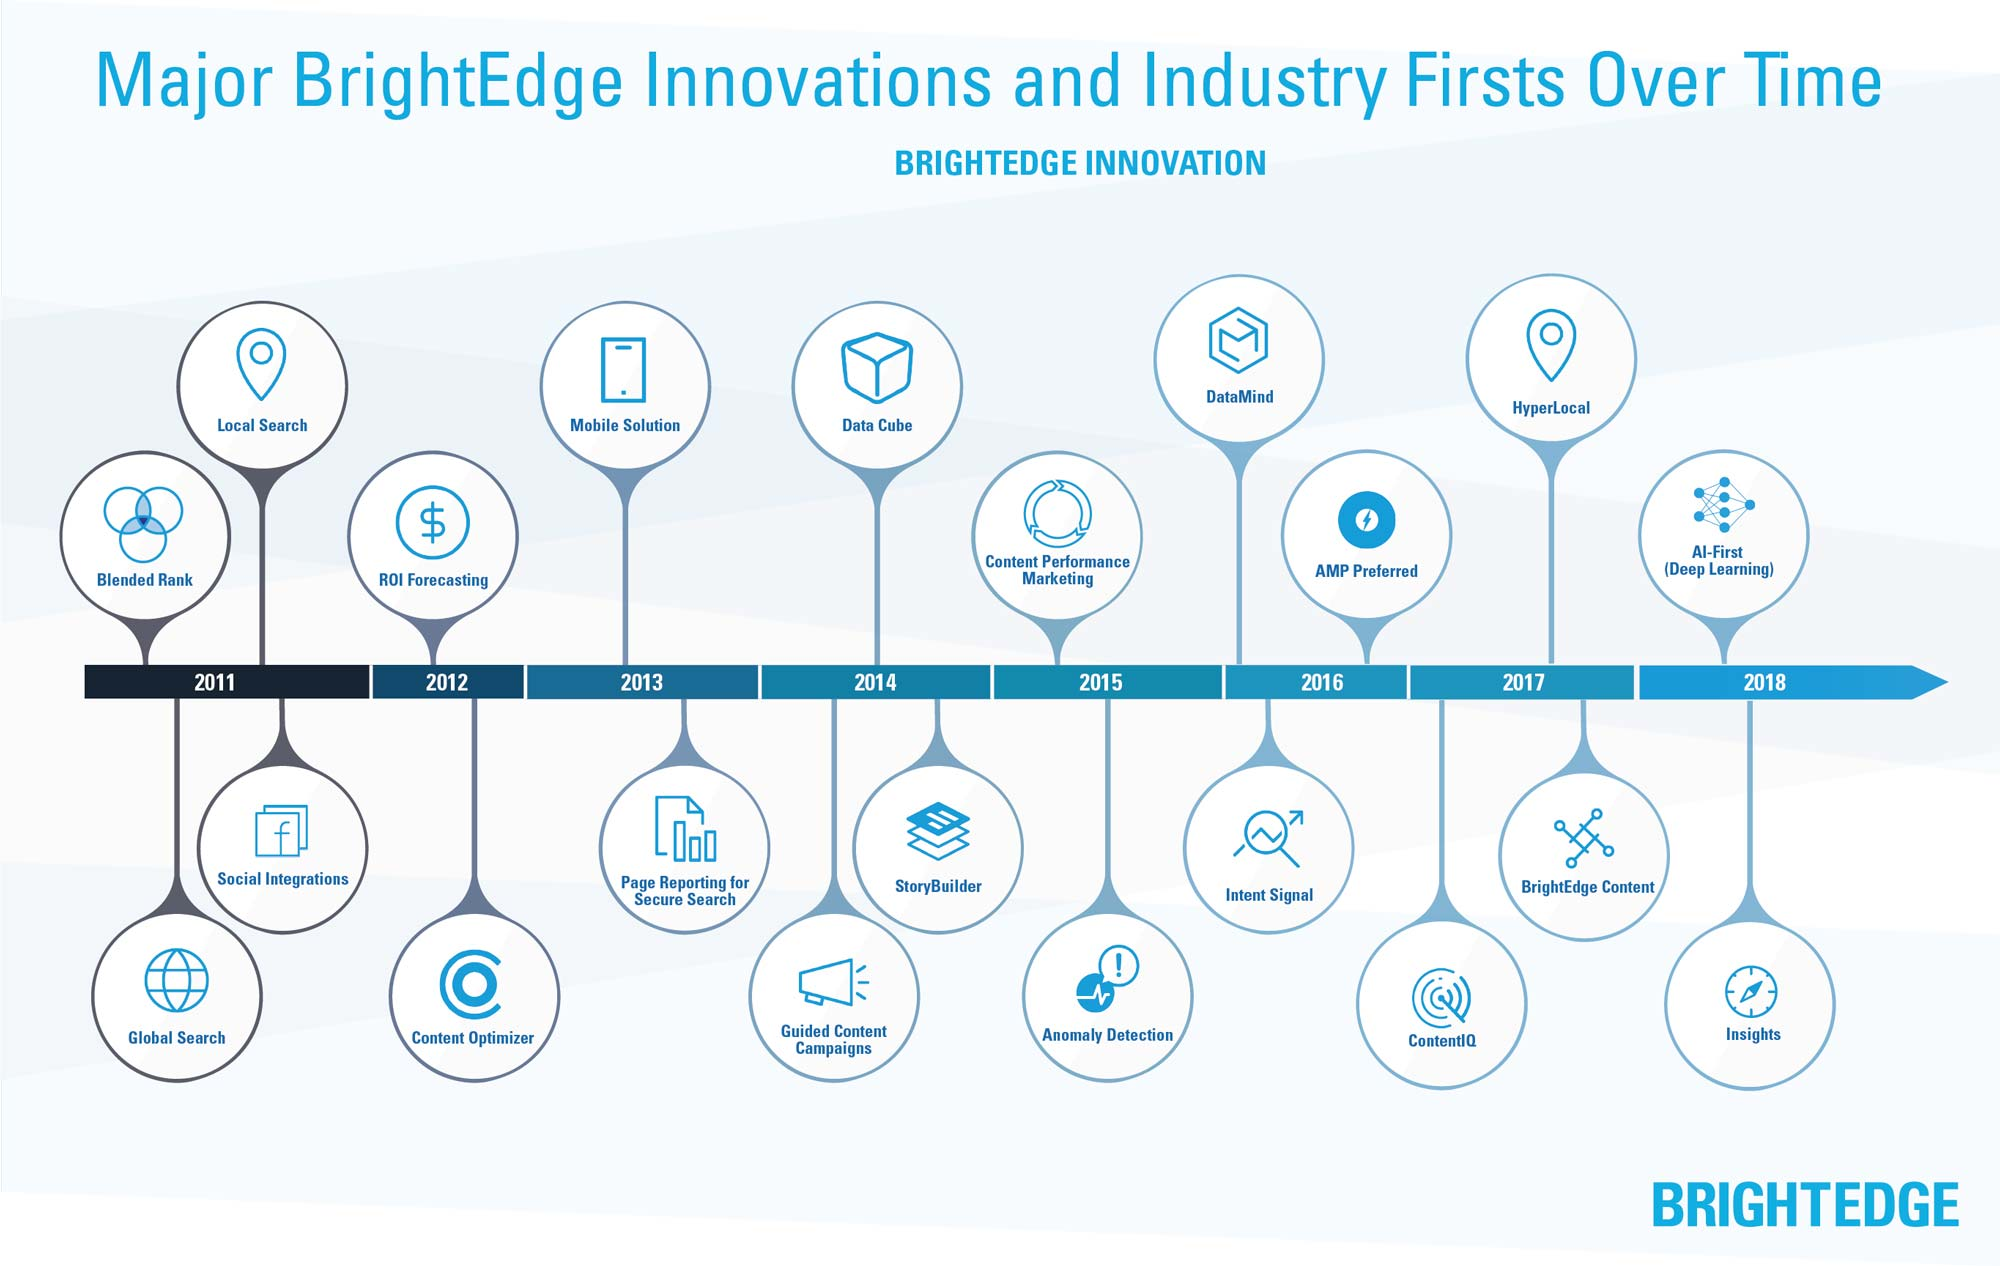 brightedge ai first company infographic